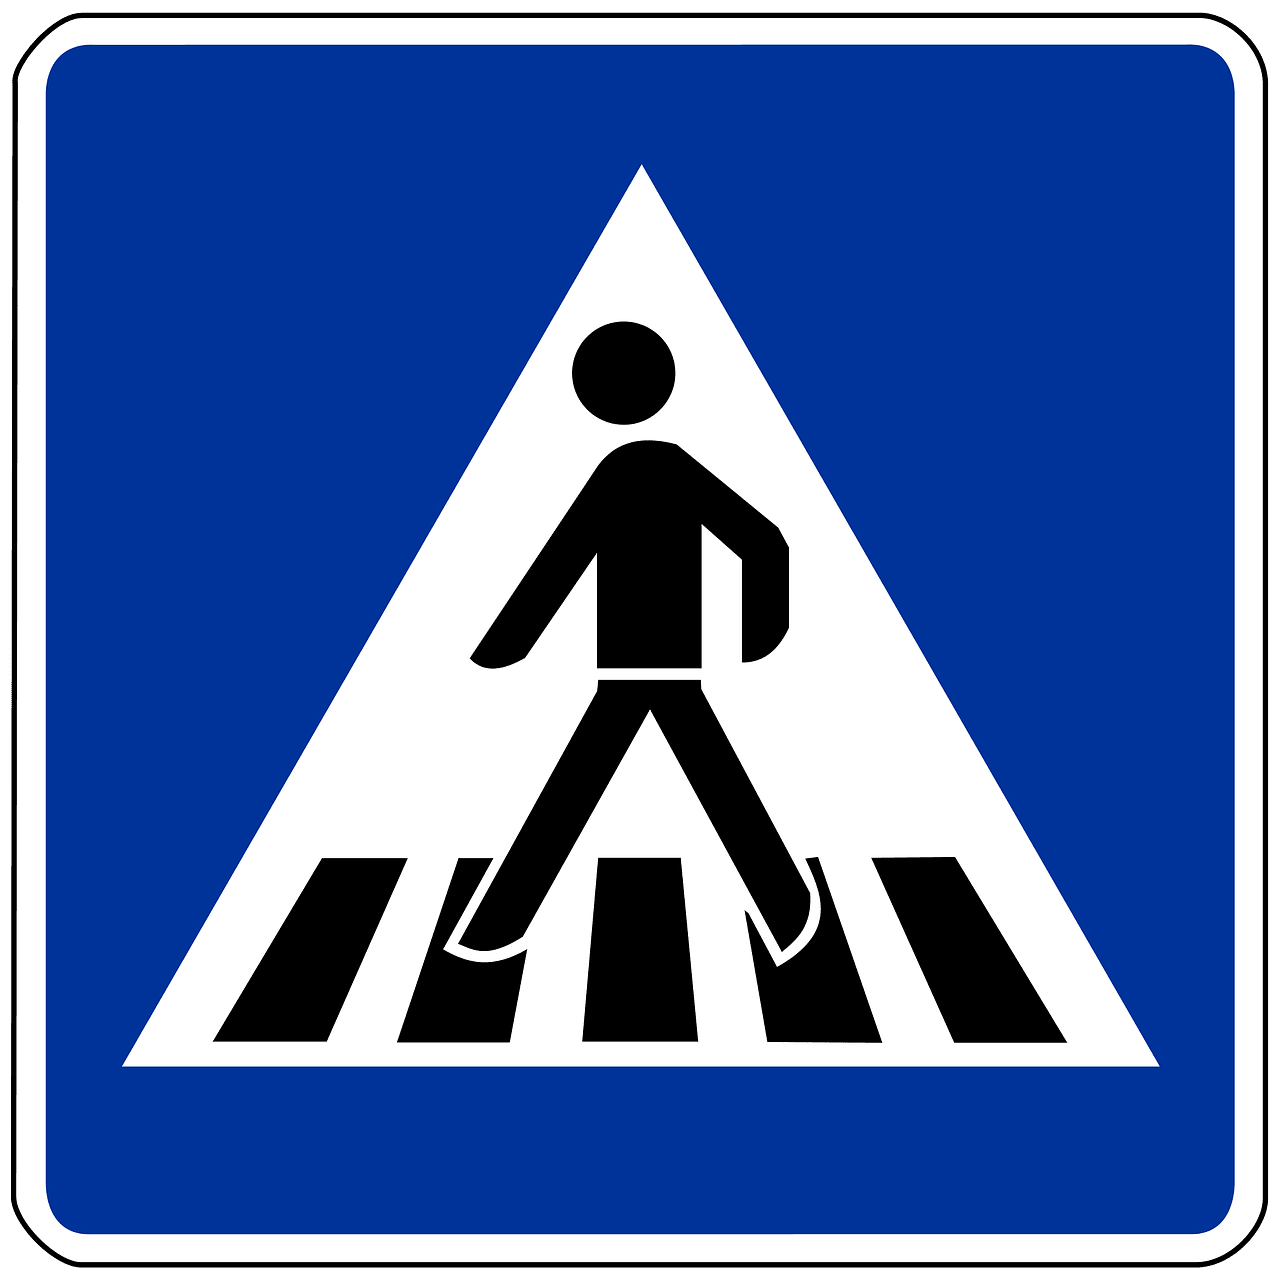 Crosswalk stick figure